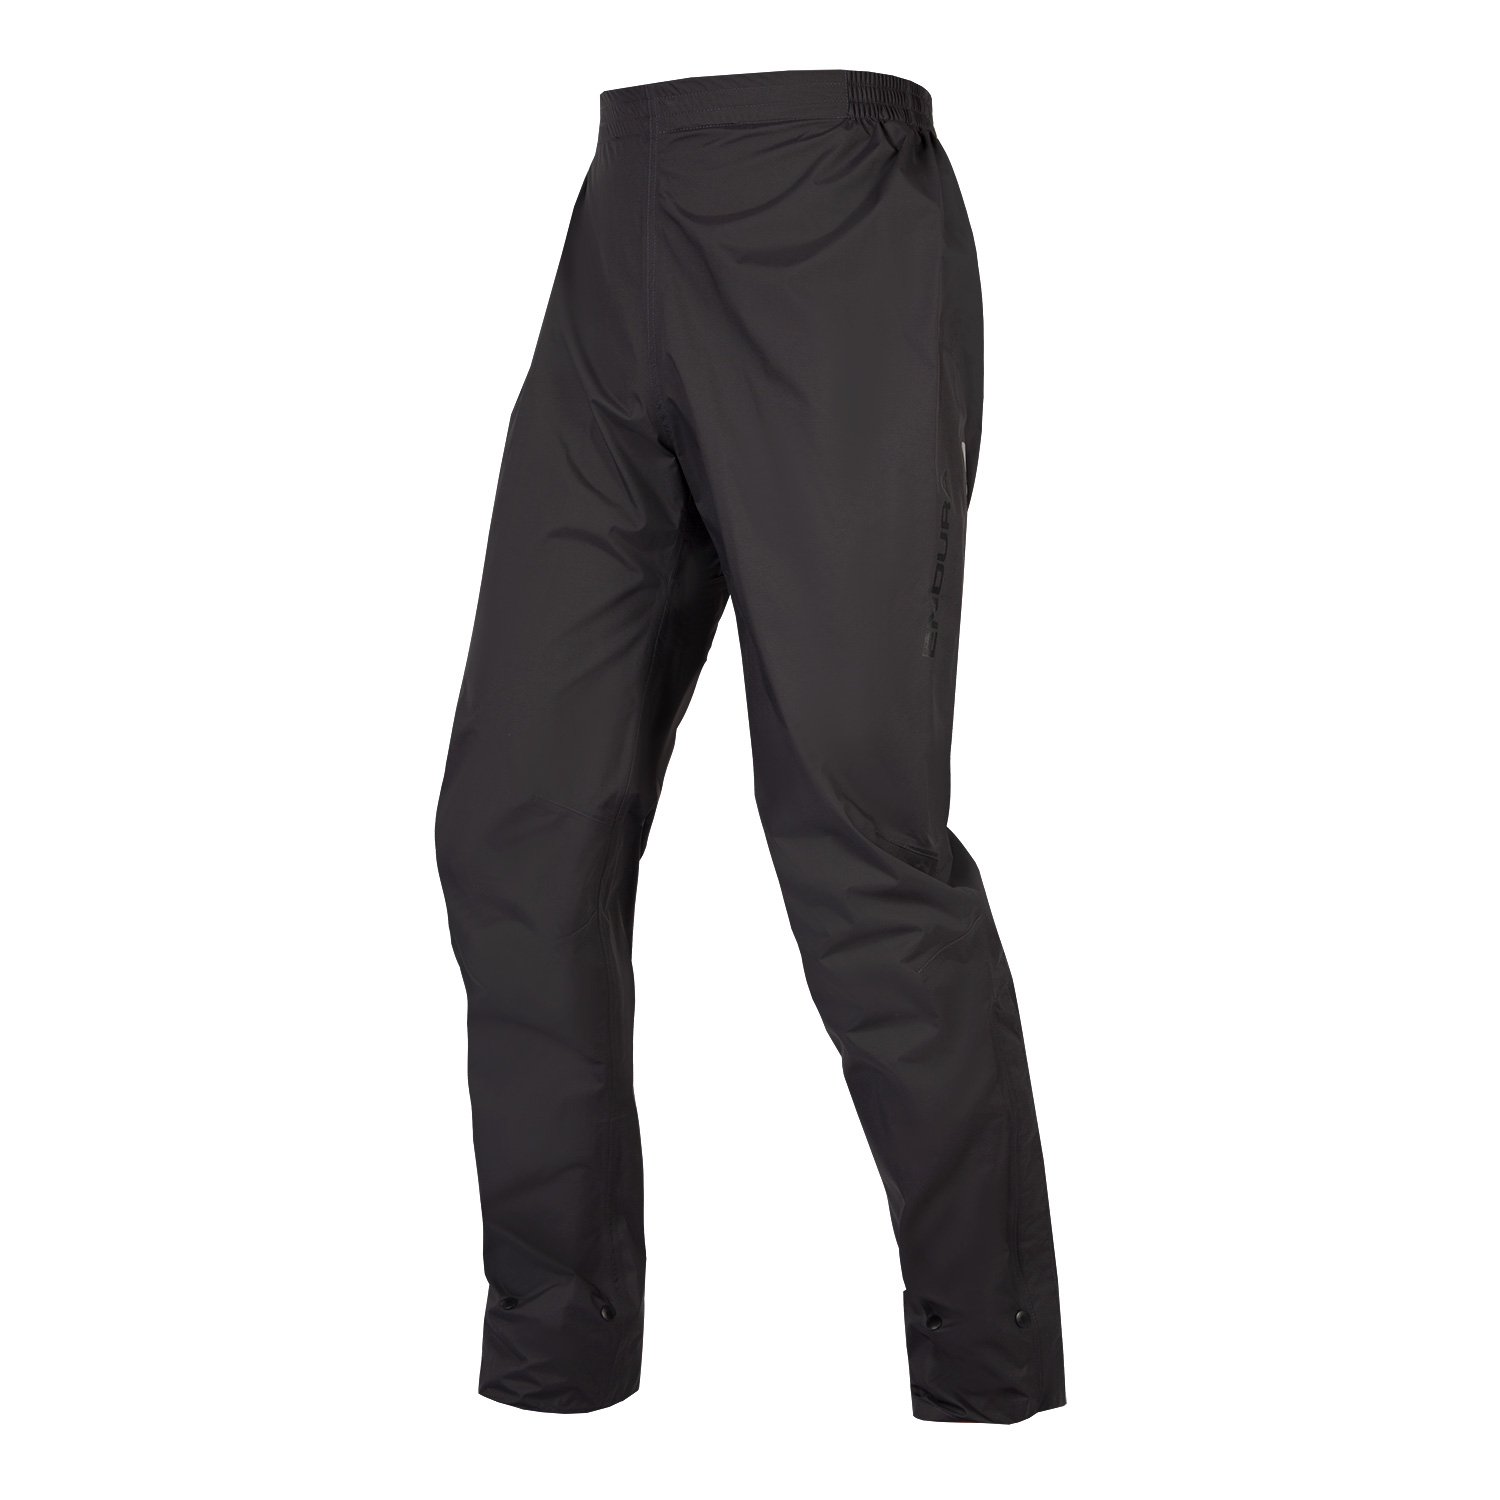 Urban Luminite Pant Anthracite